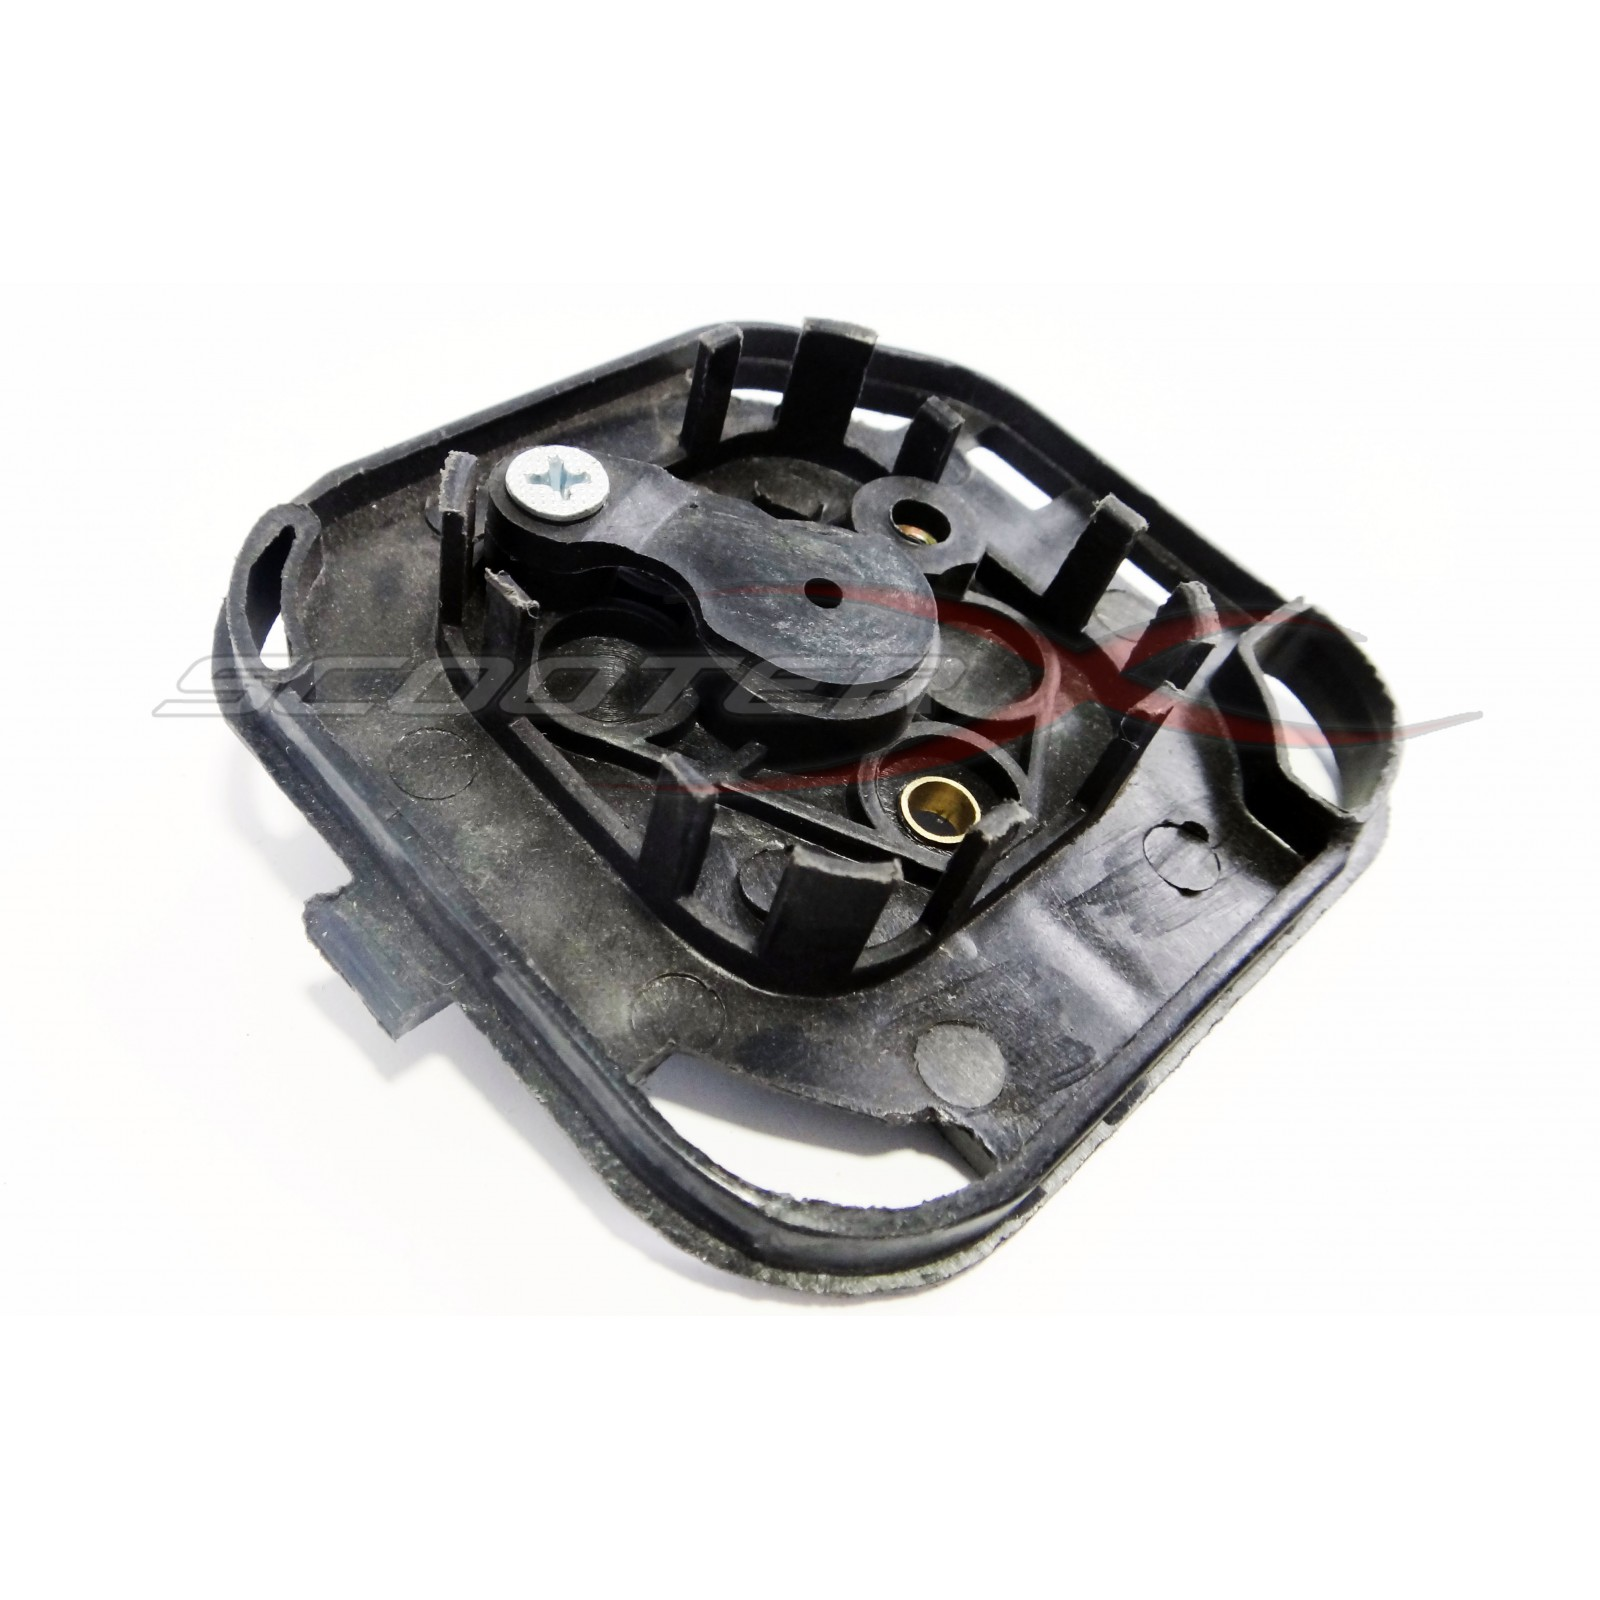 Stock Choke For 43cc And 49cc Engine Gas Motor Scooters 52cc Scooterx Power Kart Go Lever